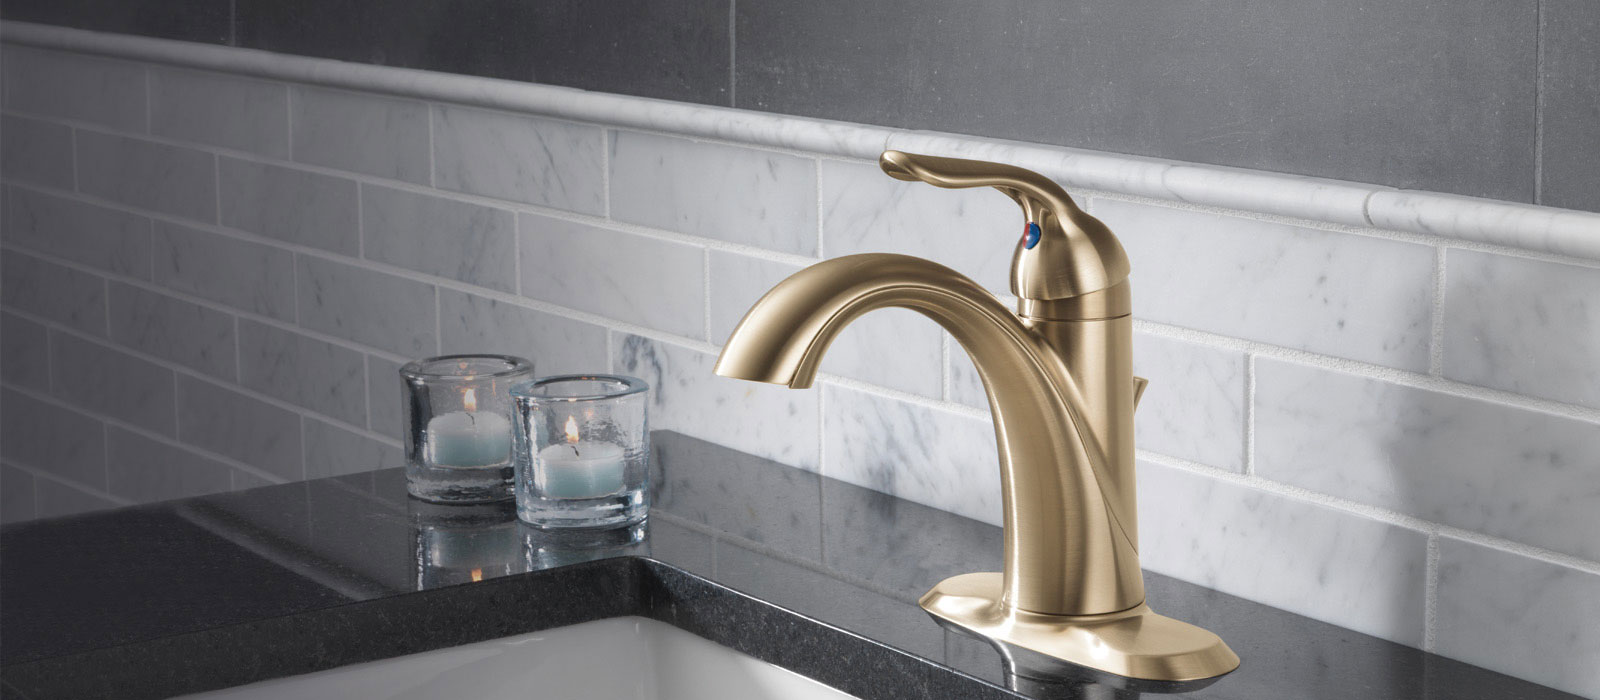 Image Courtsey of Delta Faucet